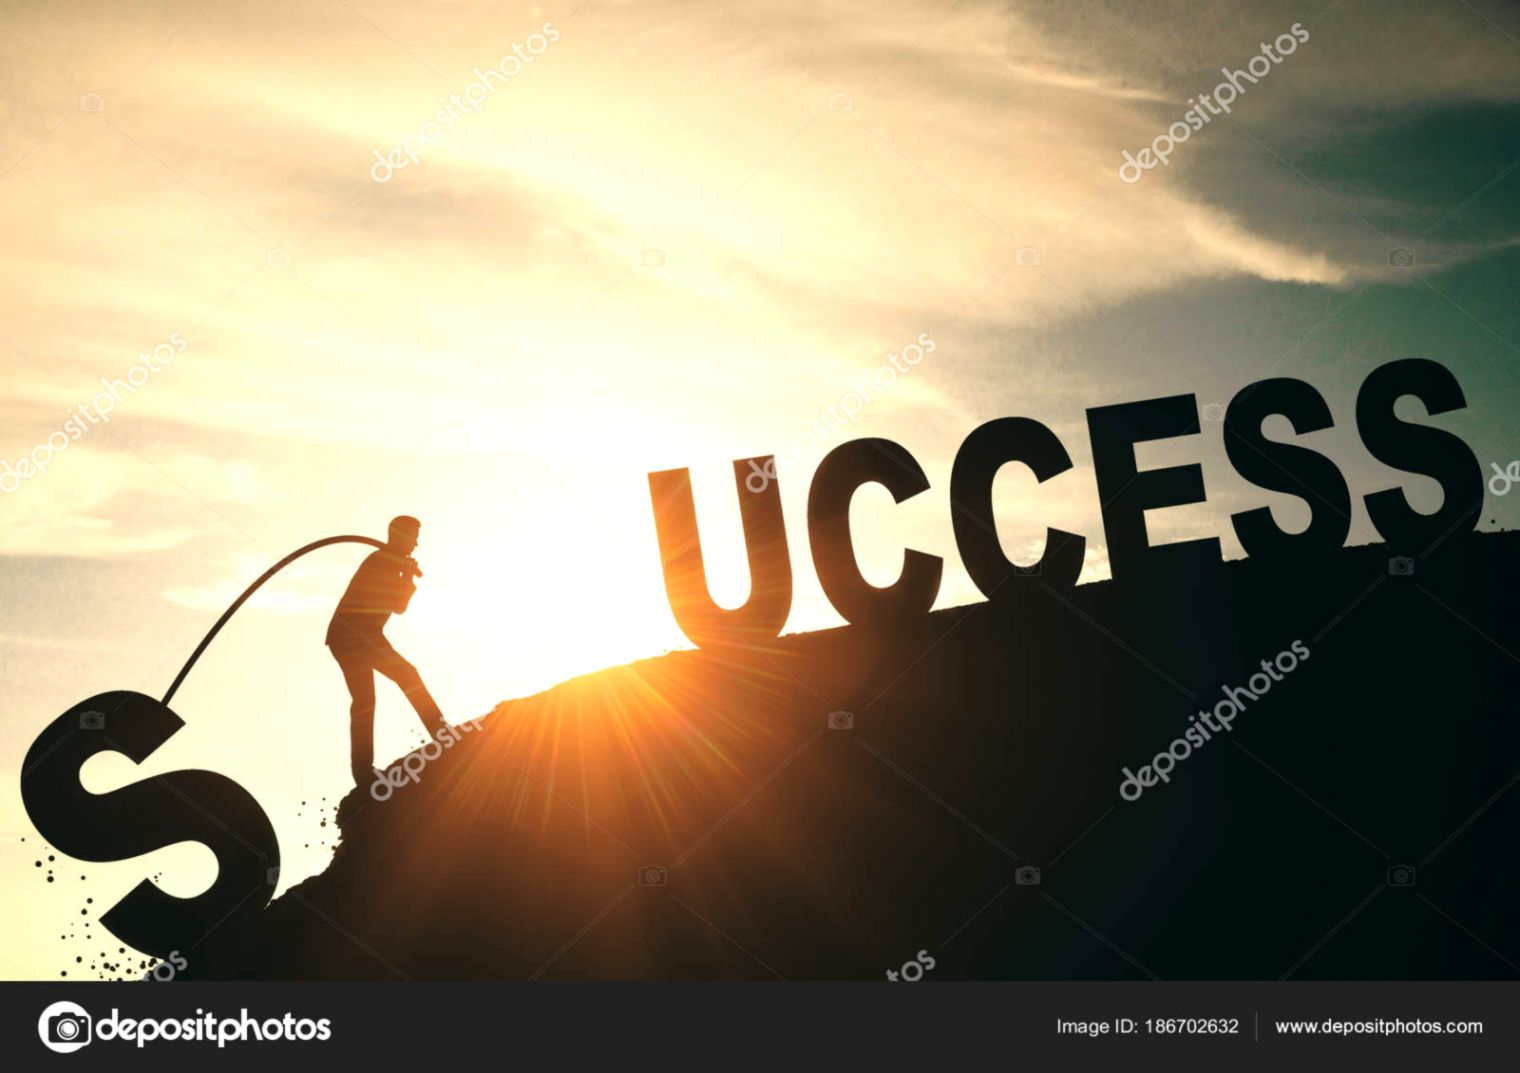 Success Wallpapers Posted By Sarah Thompson